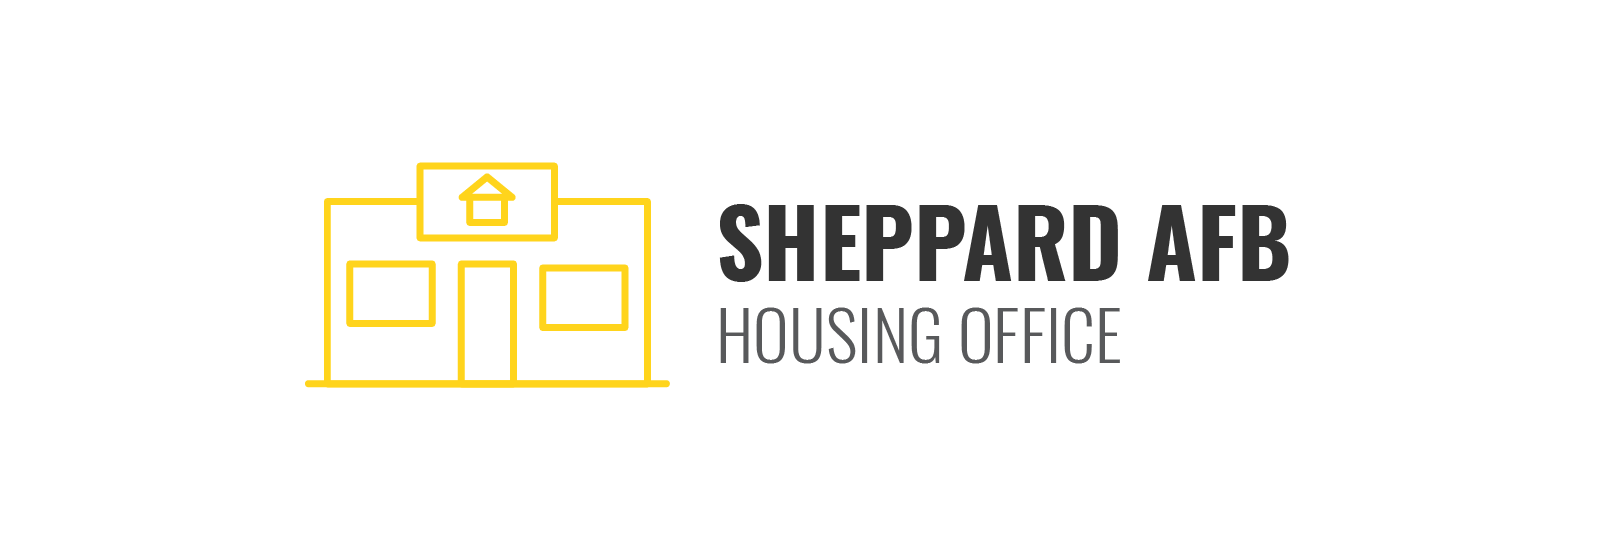 Sheppard AFB Housing Office